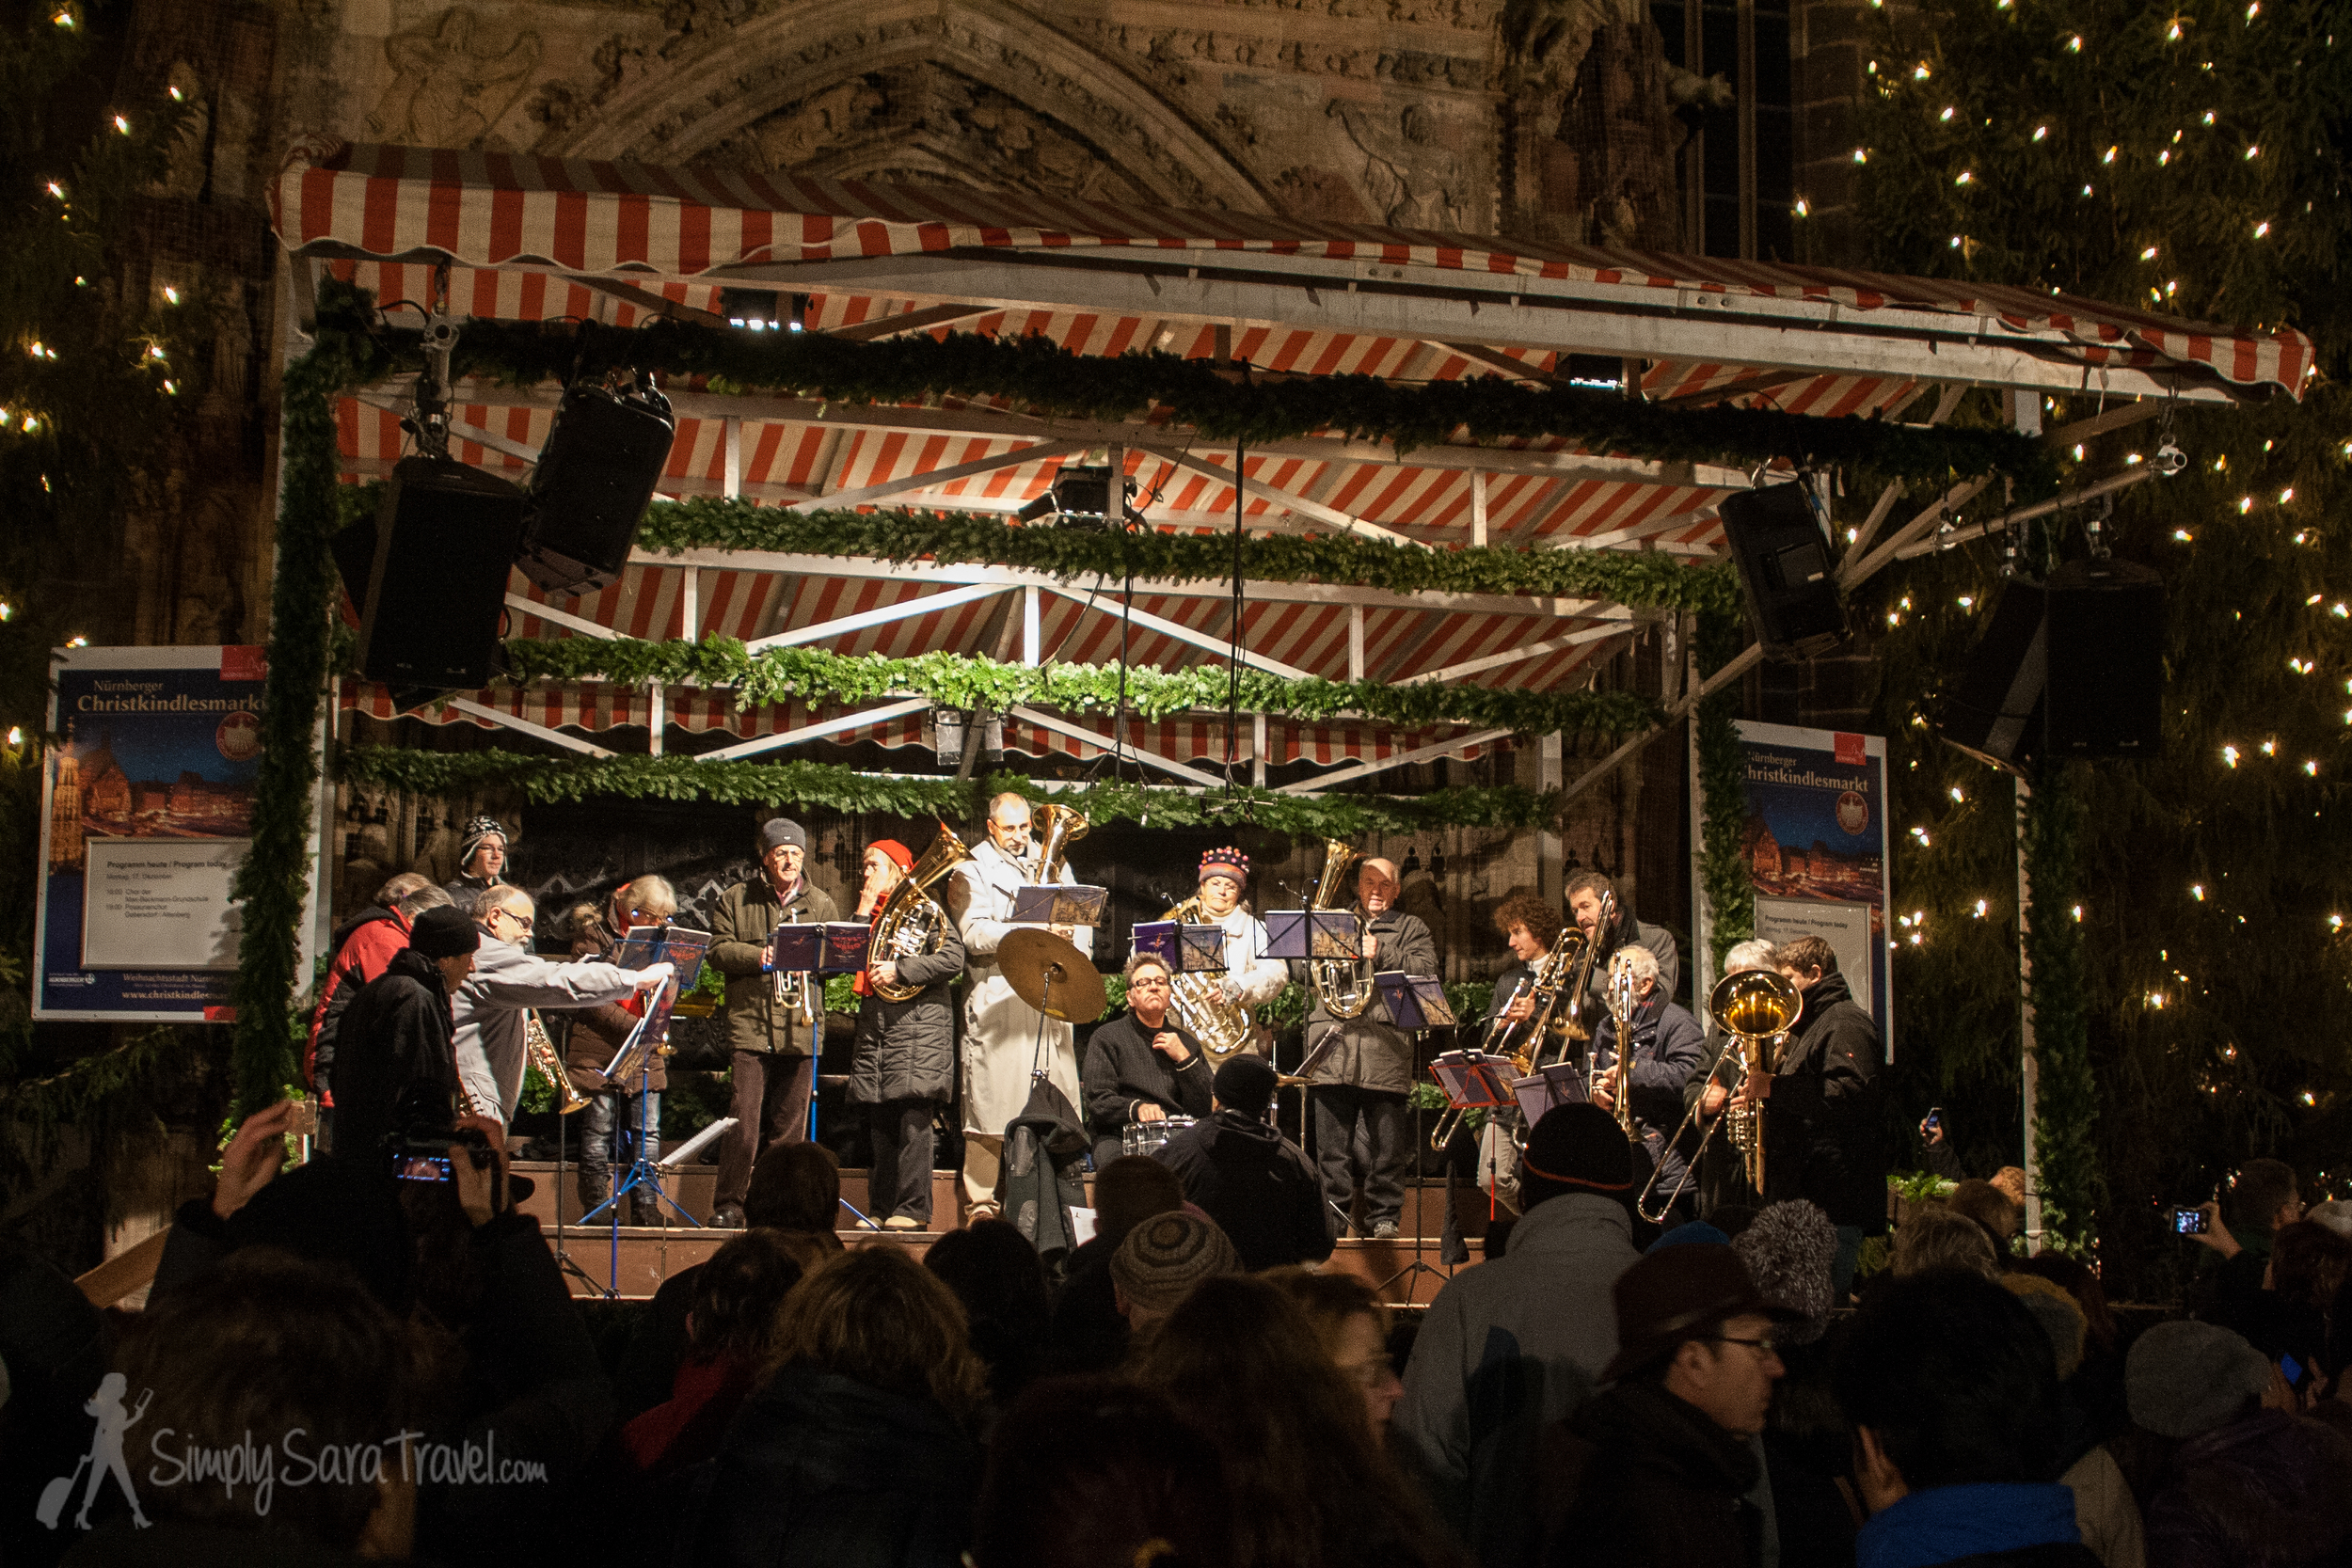 Look at the schedule forfree events at the Christmas markets, like this concert inNürnberg, Germany.